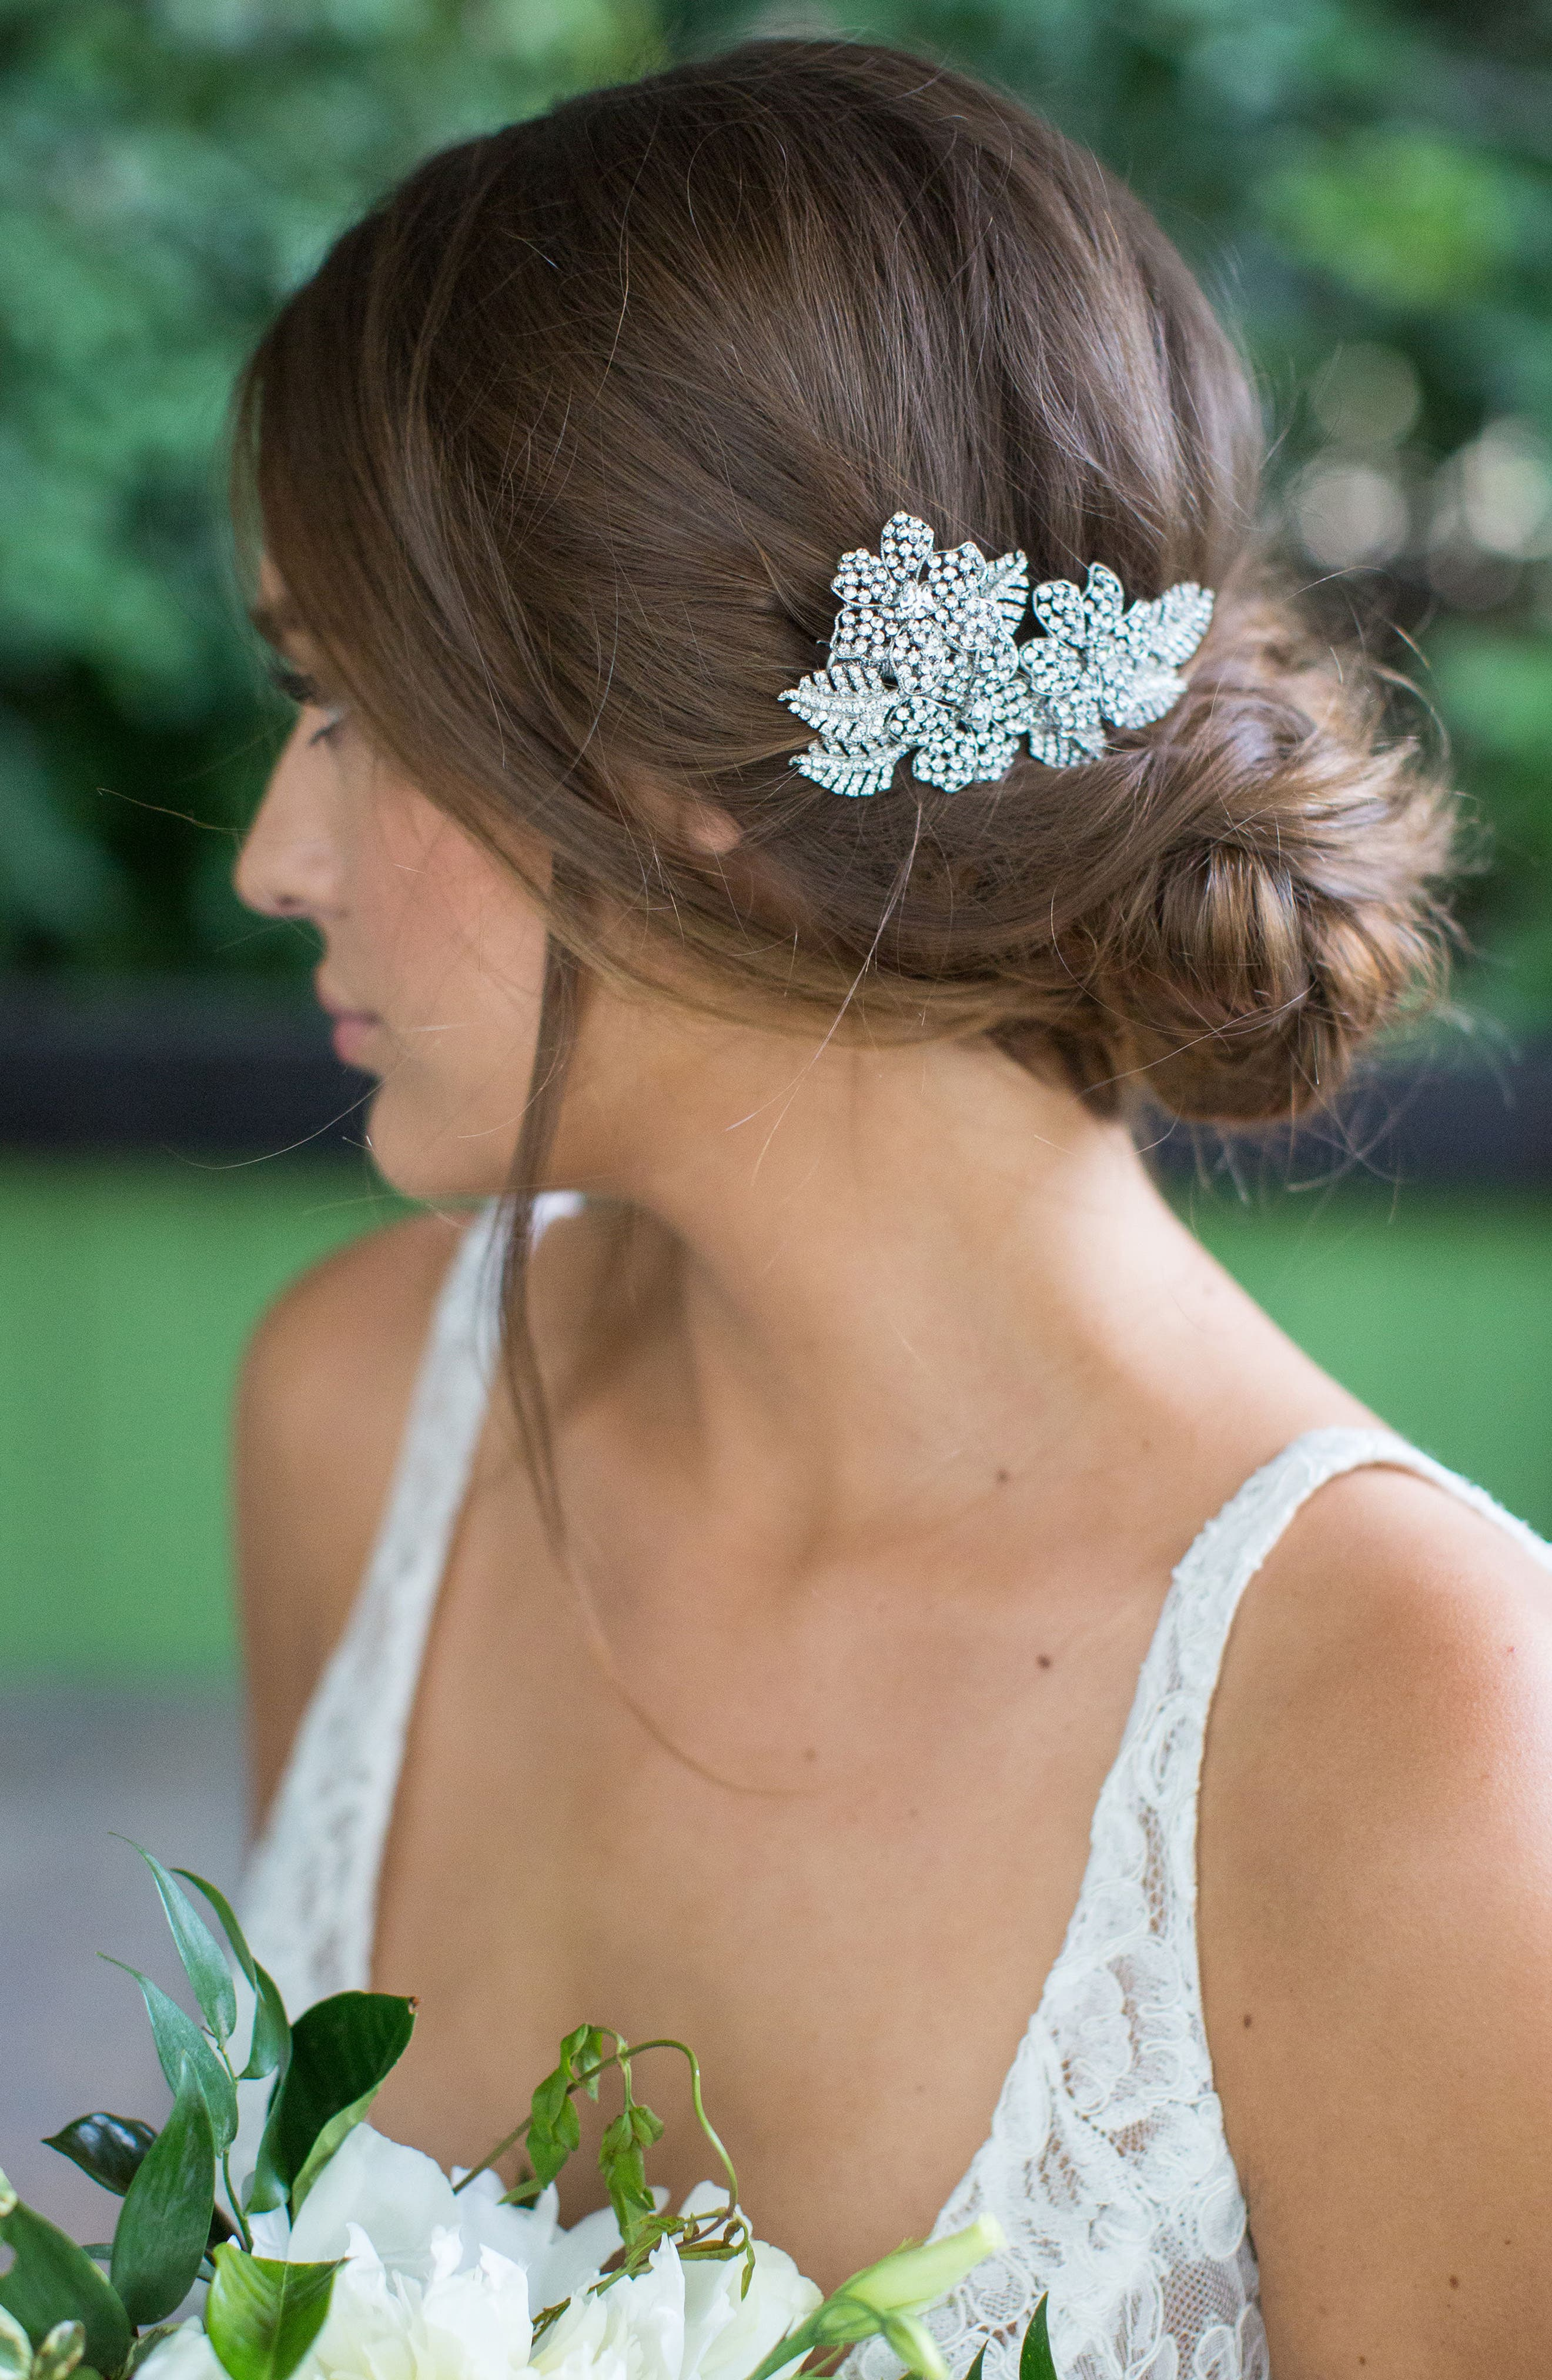 Brides & Hairpins 'Esther' Crystal Embellished Hair Clip